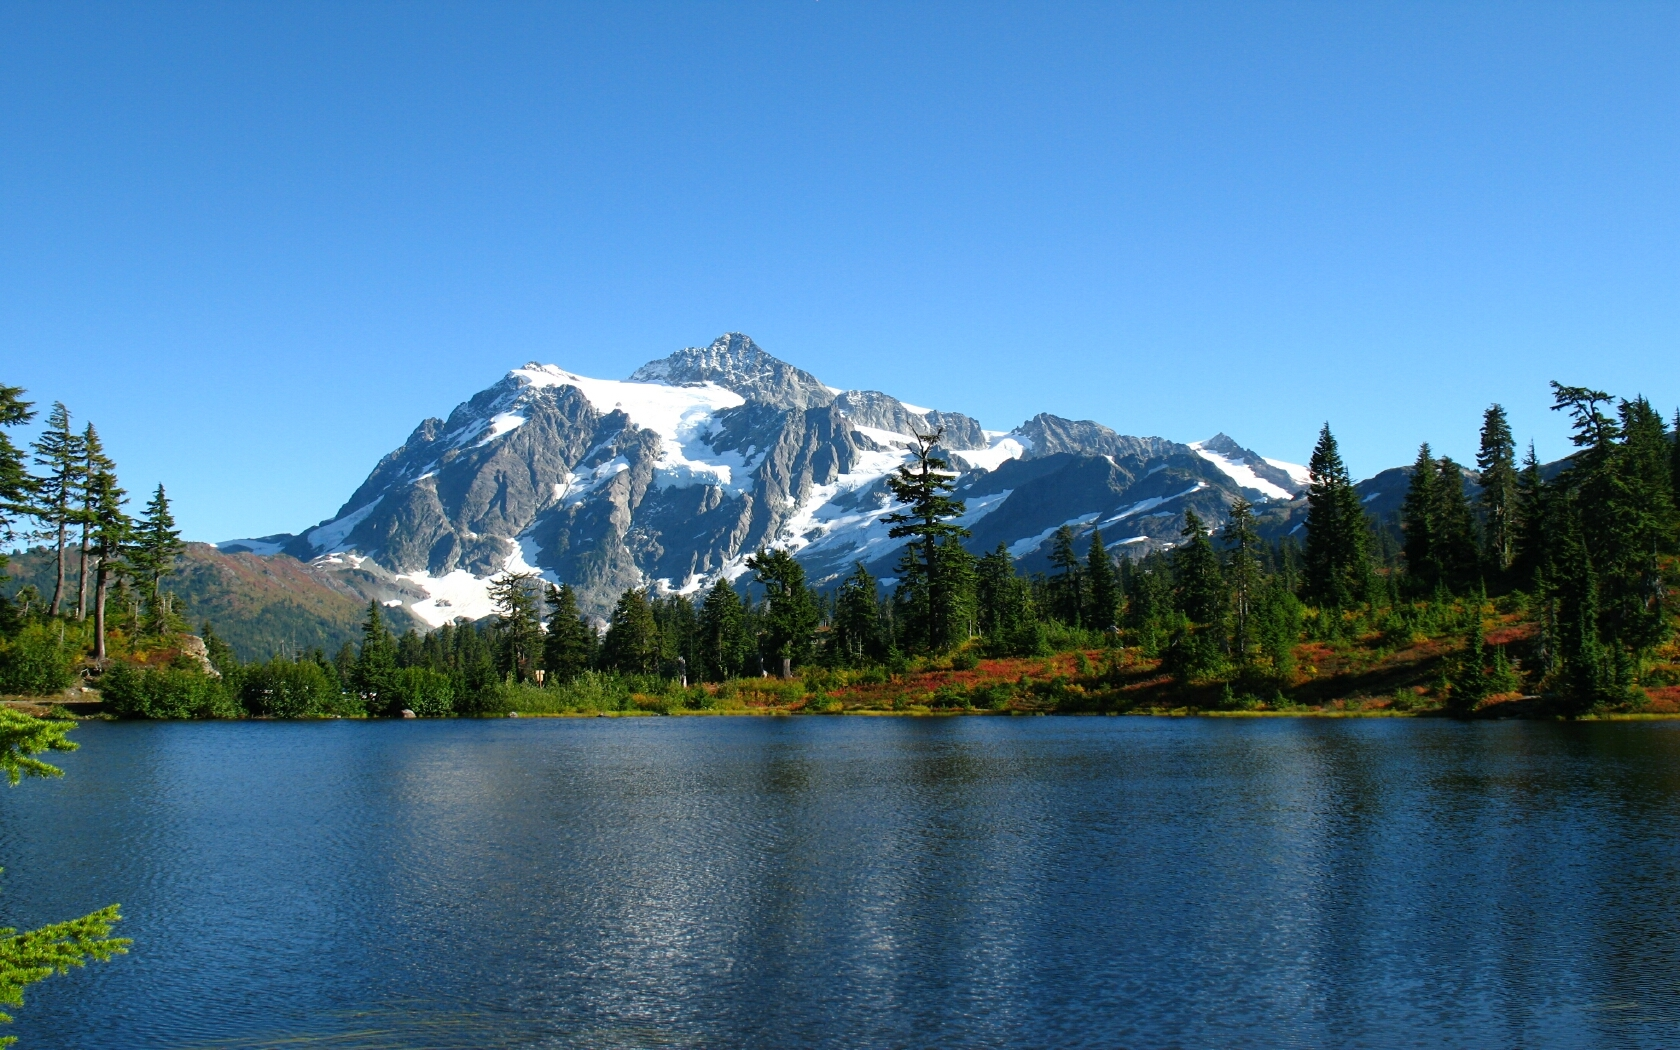 48252 download wallpaper Landscape, Nature, Mountains, Lakes screensavers and pictures for free